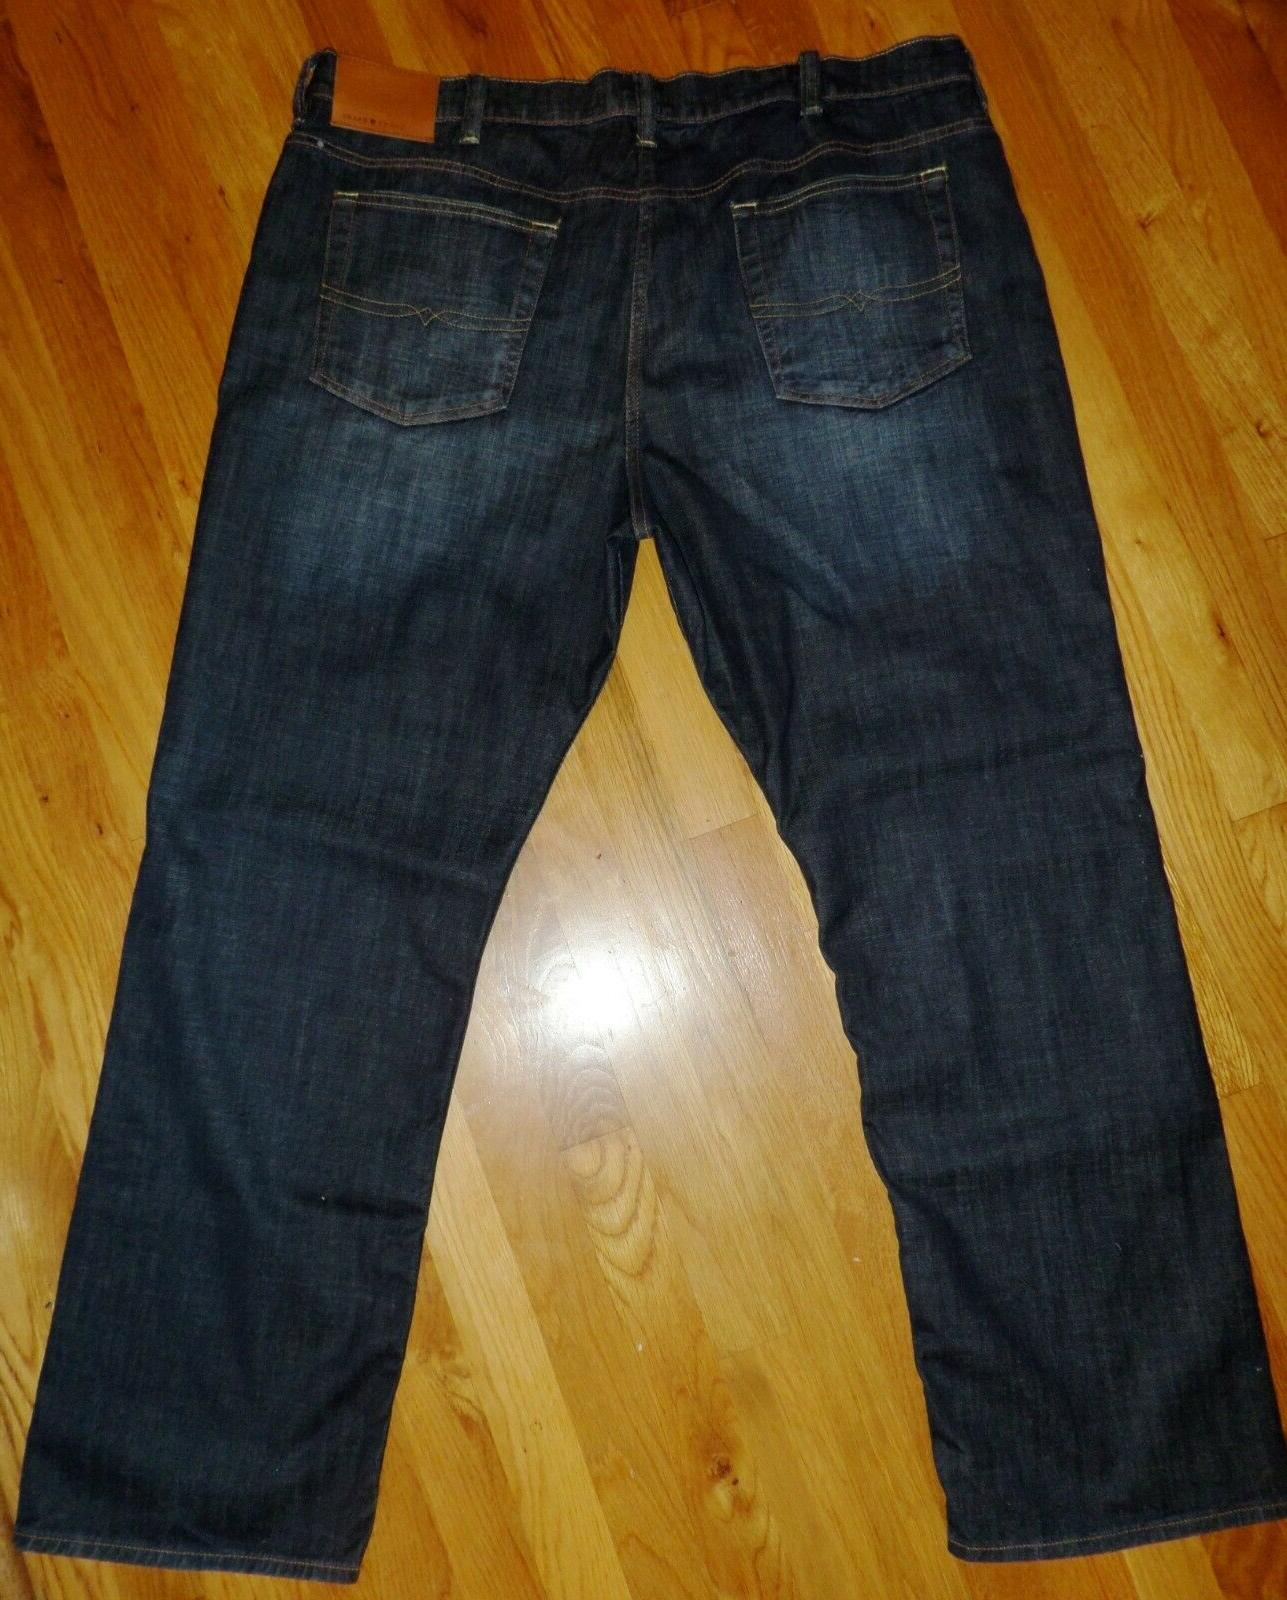 NWOT Men's Lucky Brand 181 Relaxed Jeans Size 34